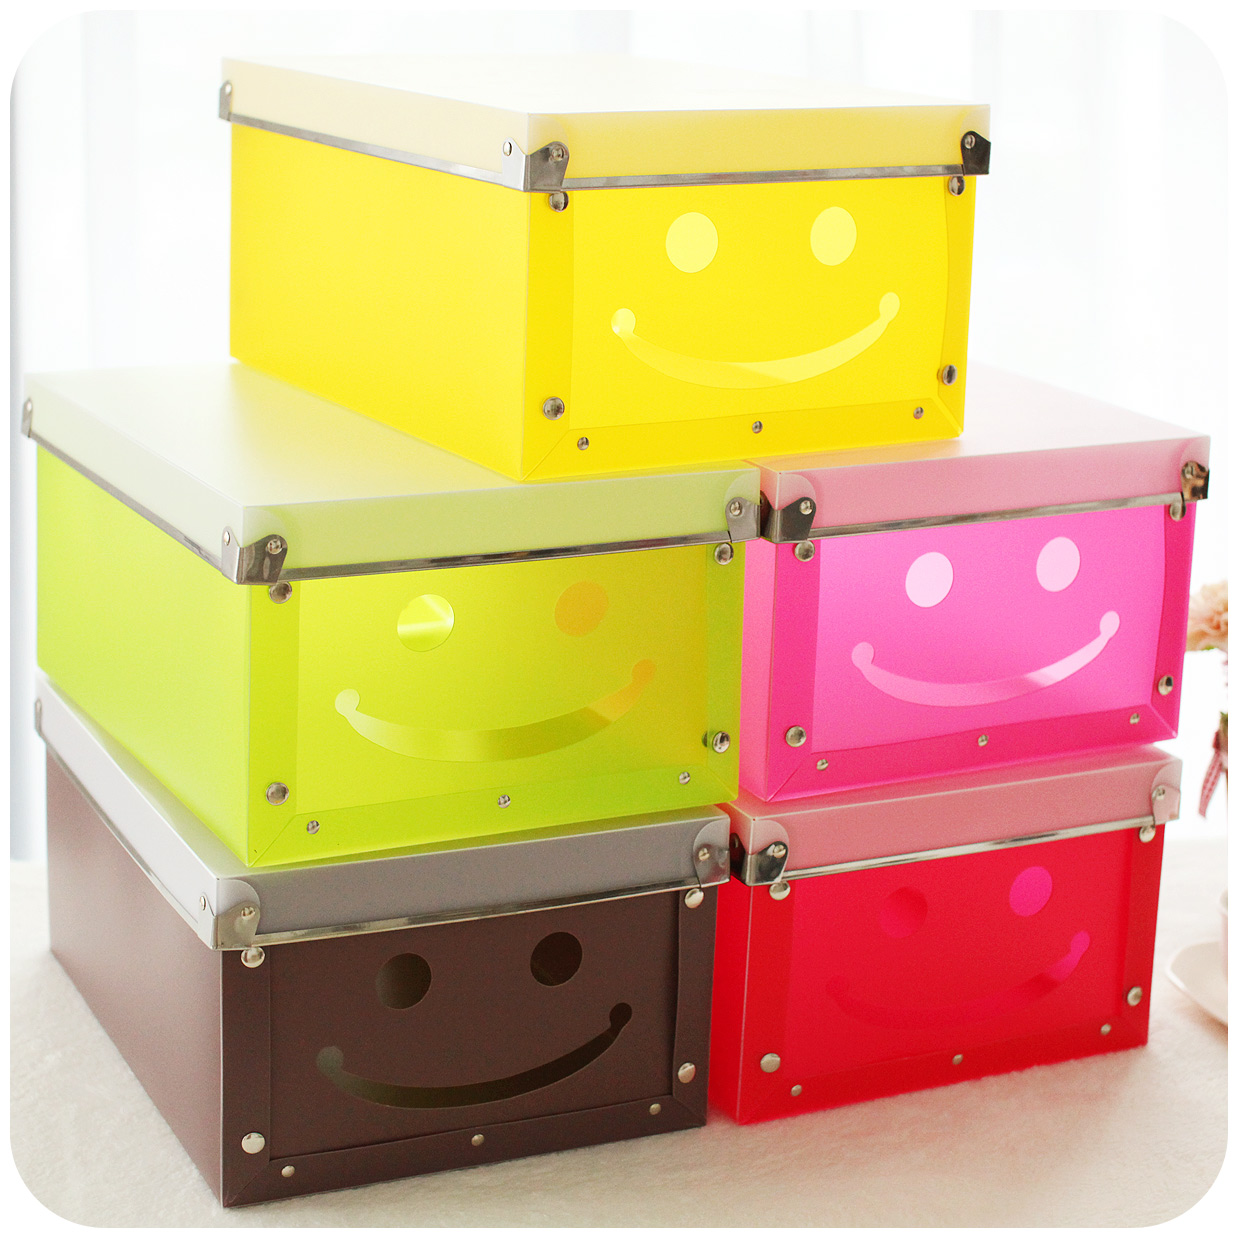 smiley plastic diy storage box finishing large folding makeup organizer rangement chaussure. Black Bedroom Furniture Sets. Home Design Ideas